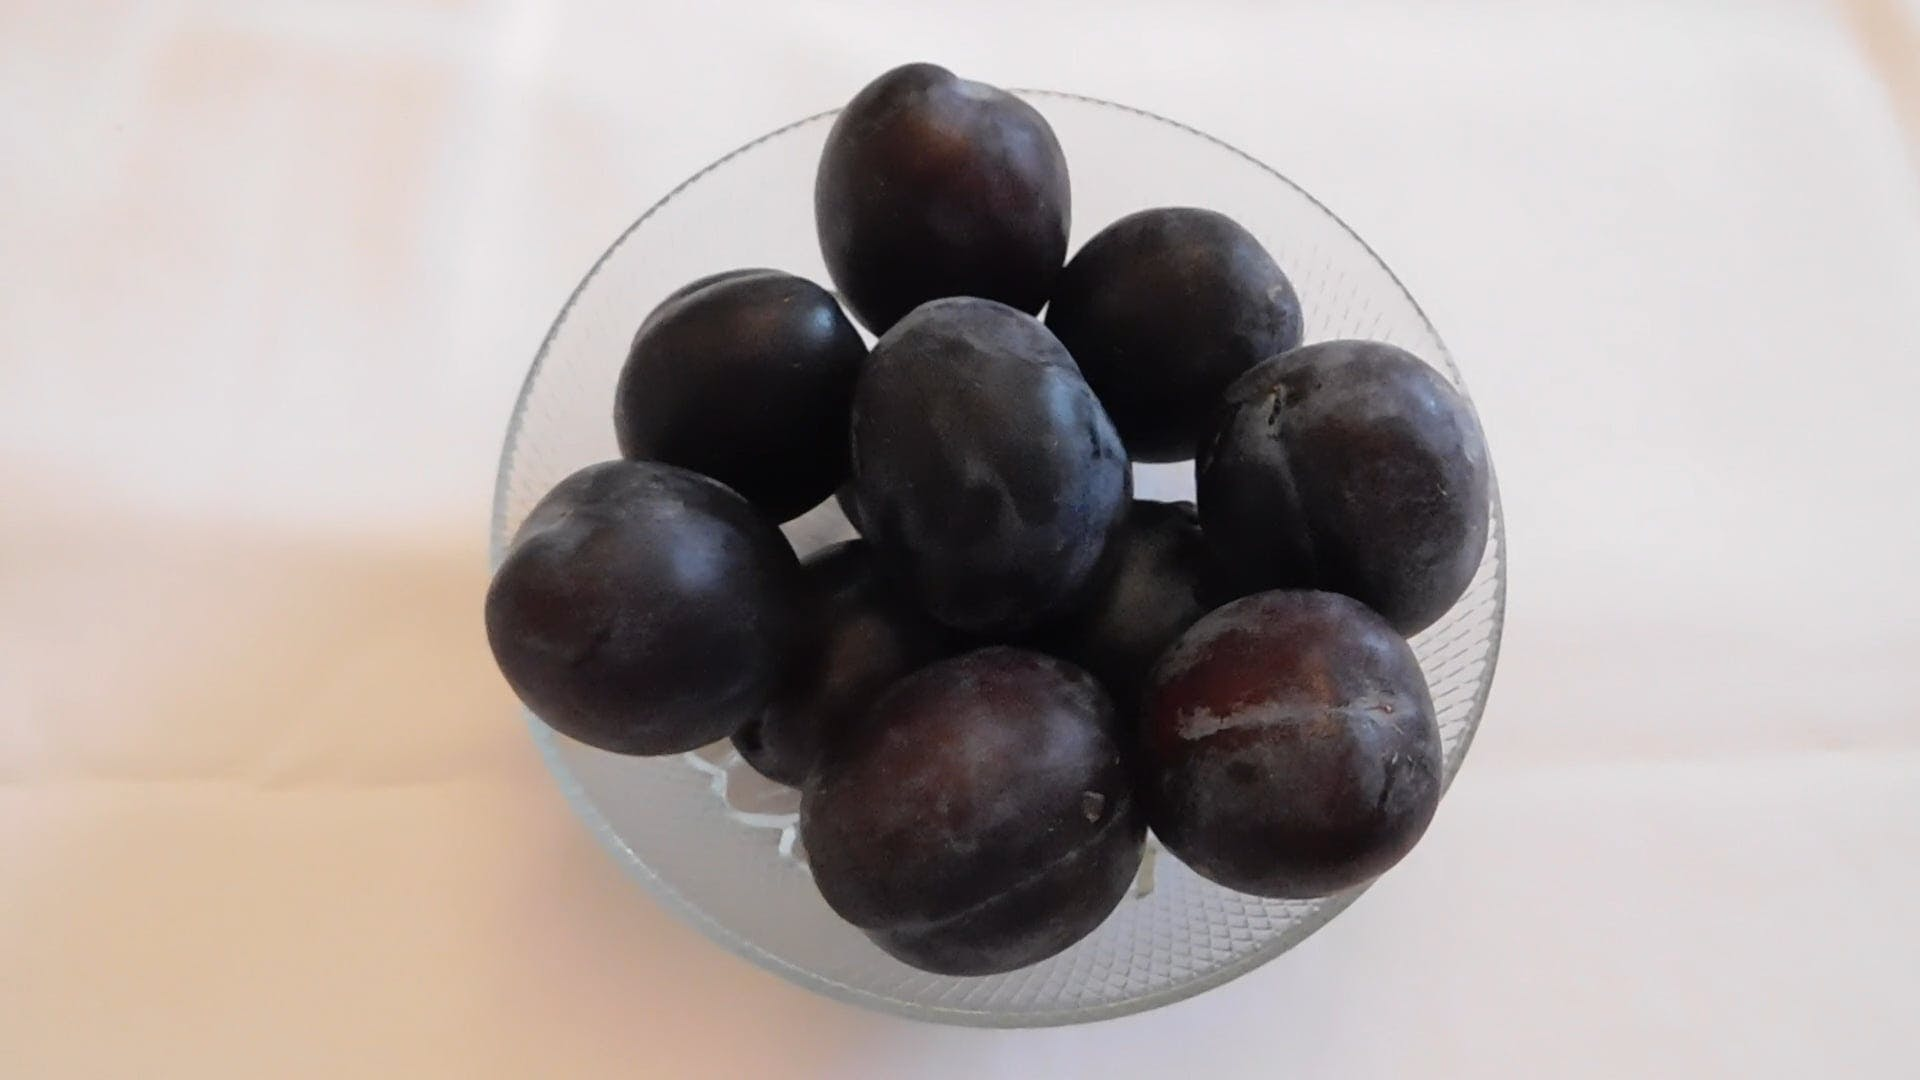 Delicious Prunes In A Bowl